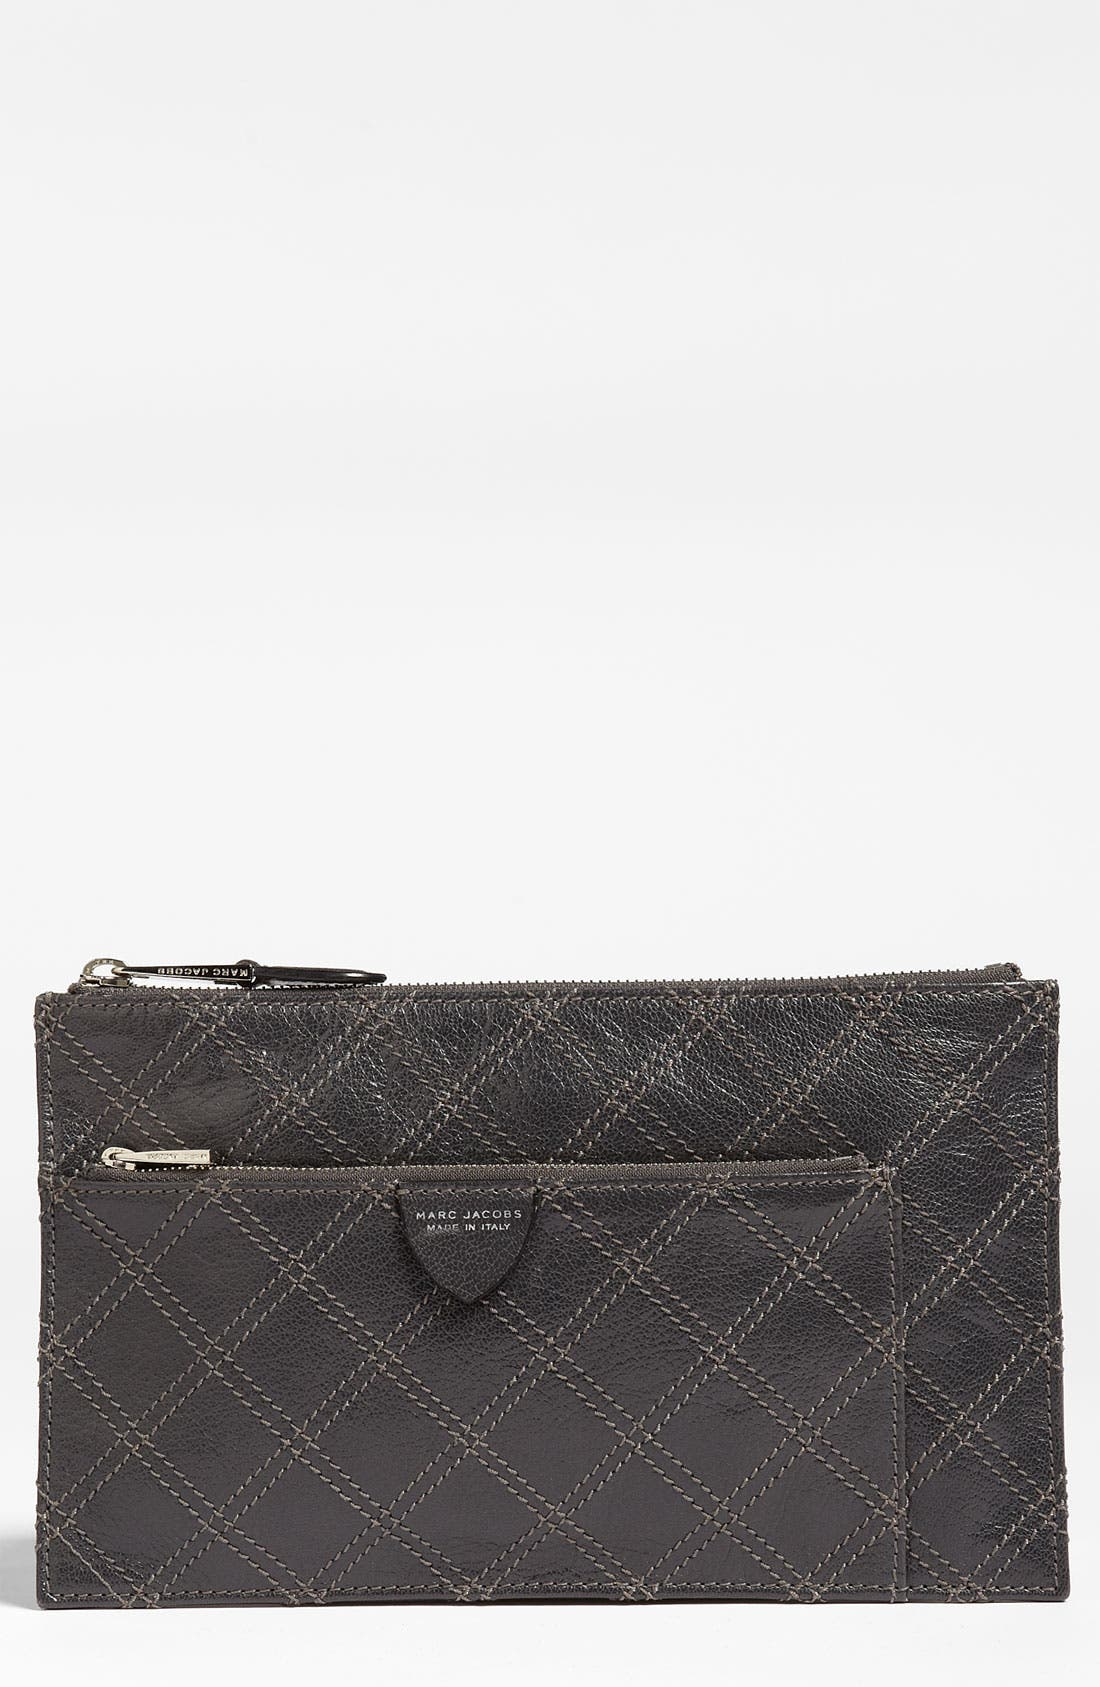 Main Image - MARC JACOBS 'Small' Leather Pouch